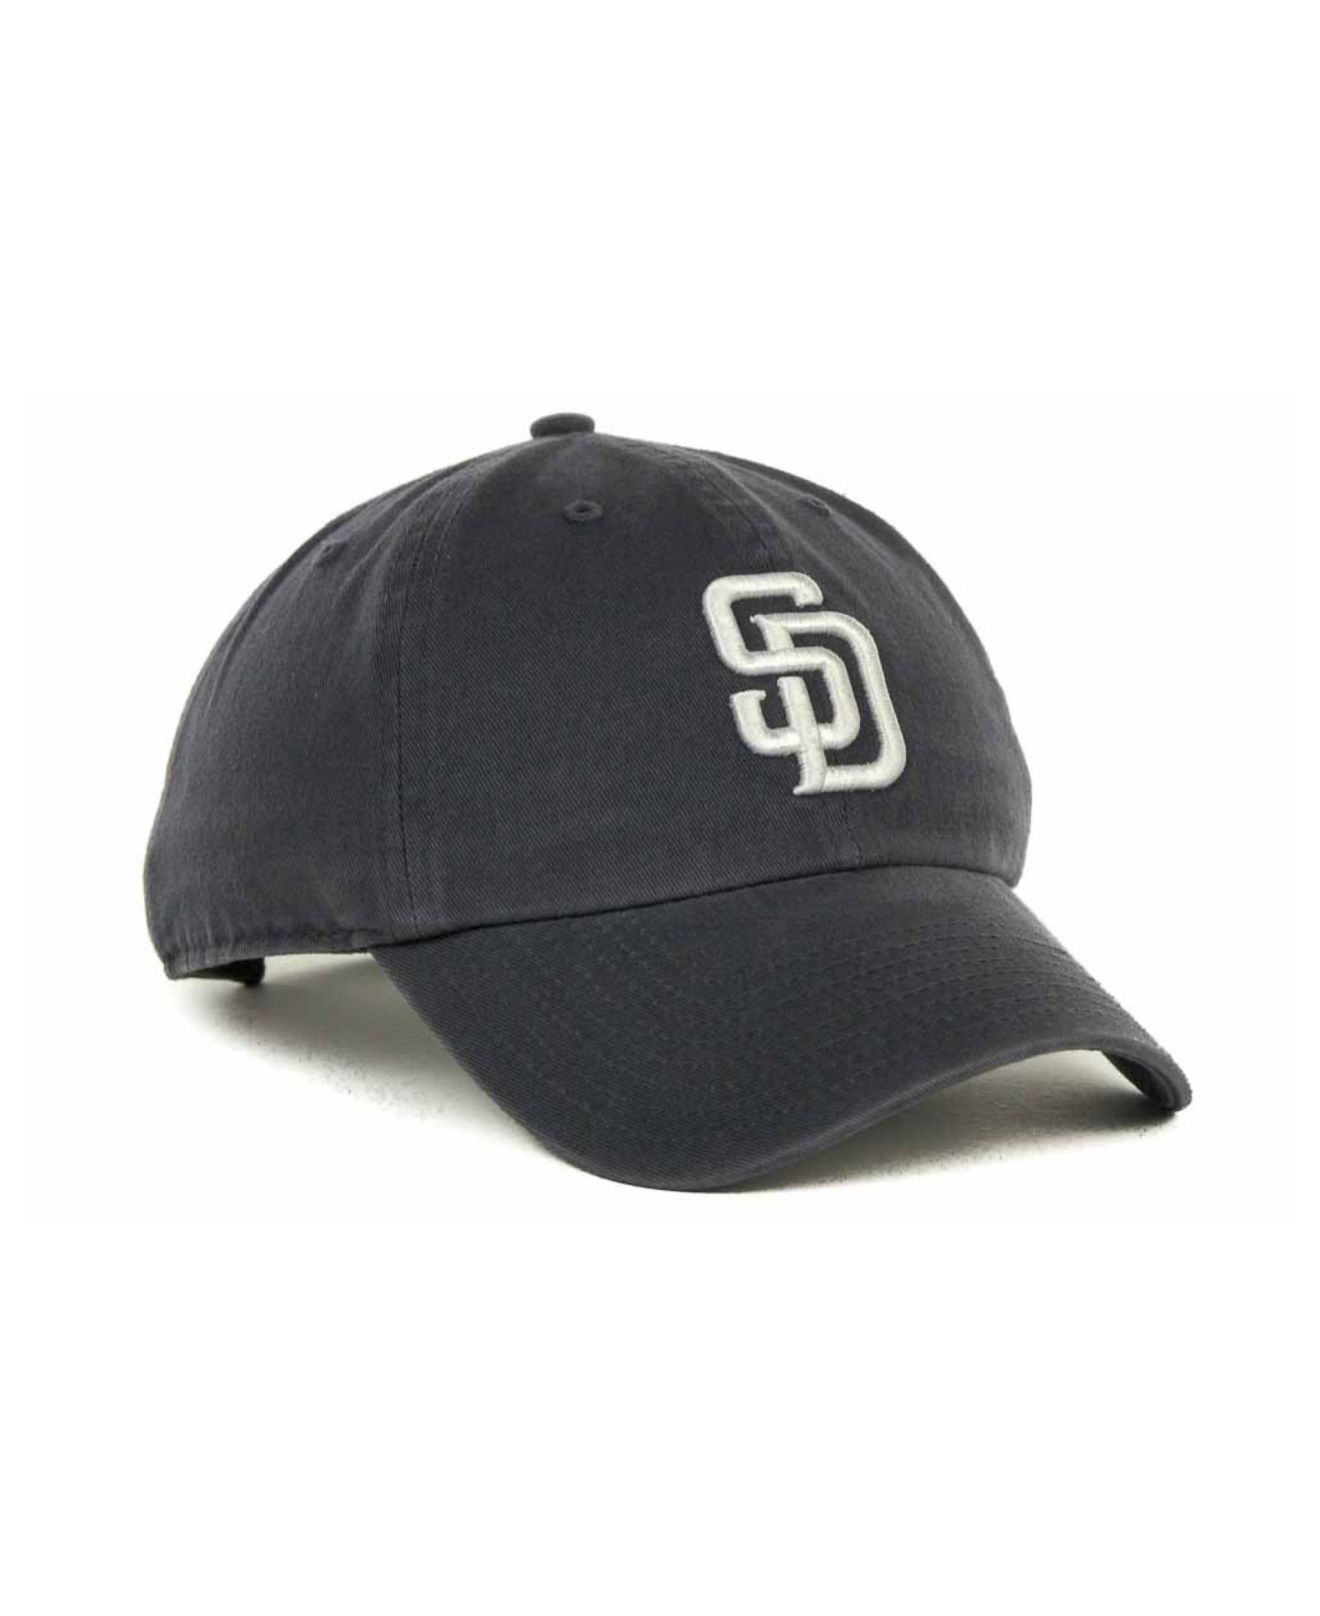 a512af69473b2 ... purchase lyst 47 brand san diego padres clean up hat in blue for men  f4d19 acec4 ...